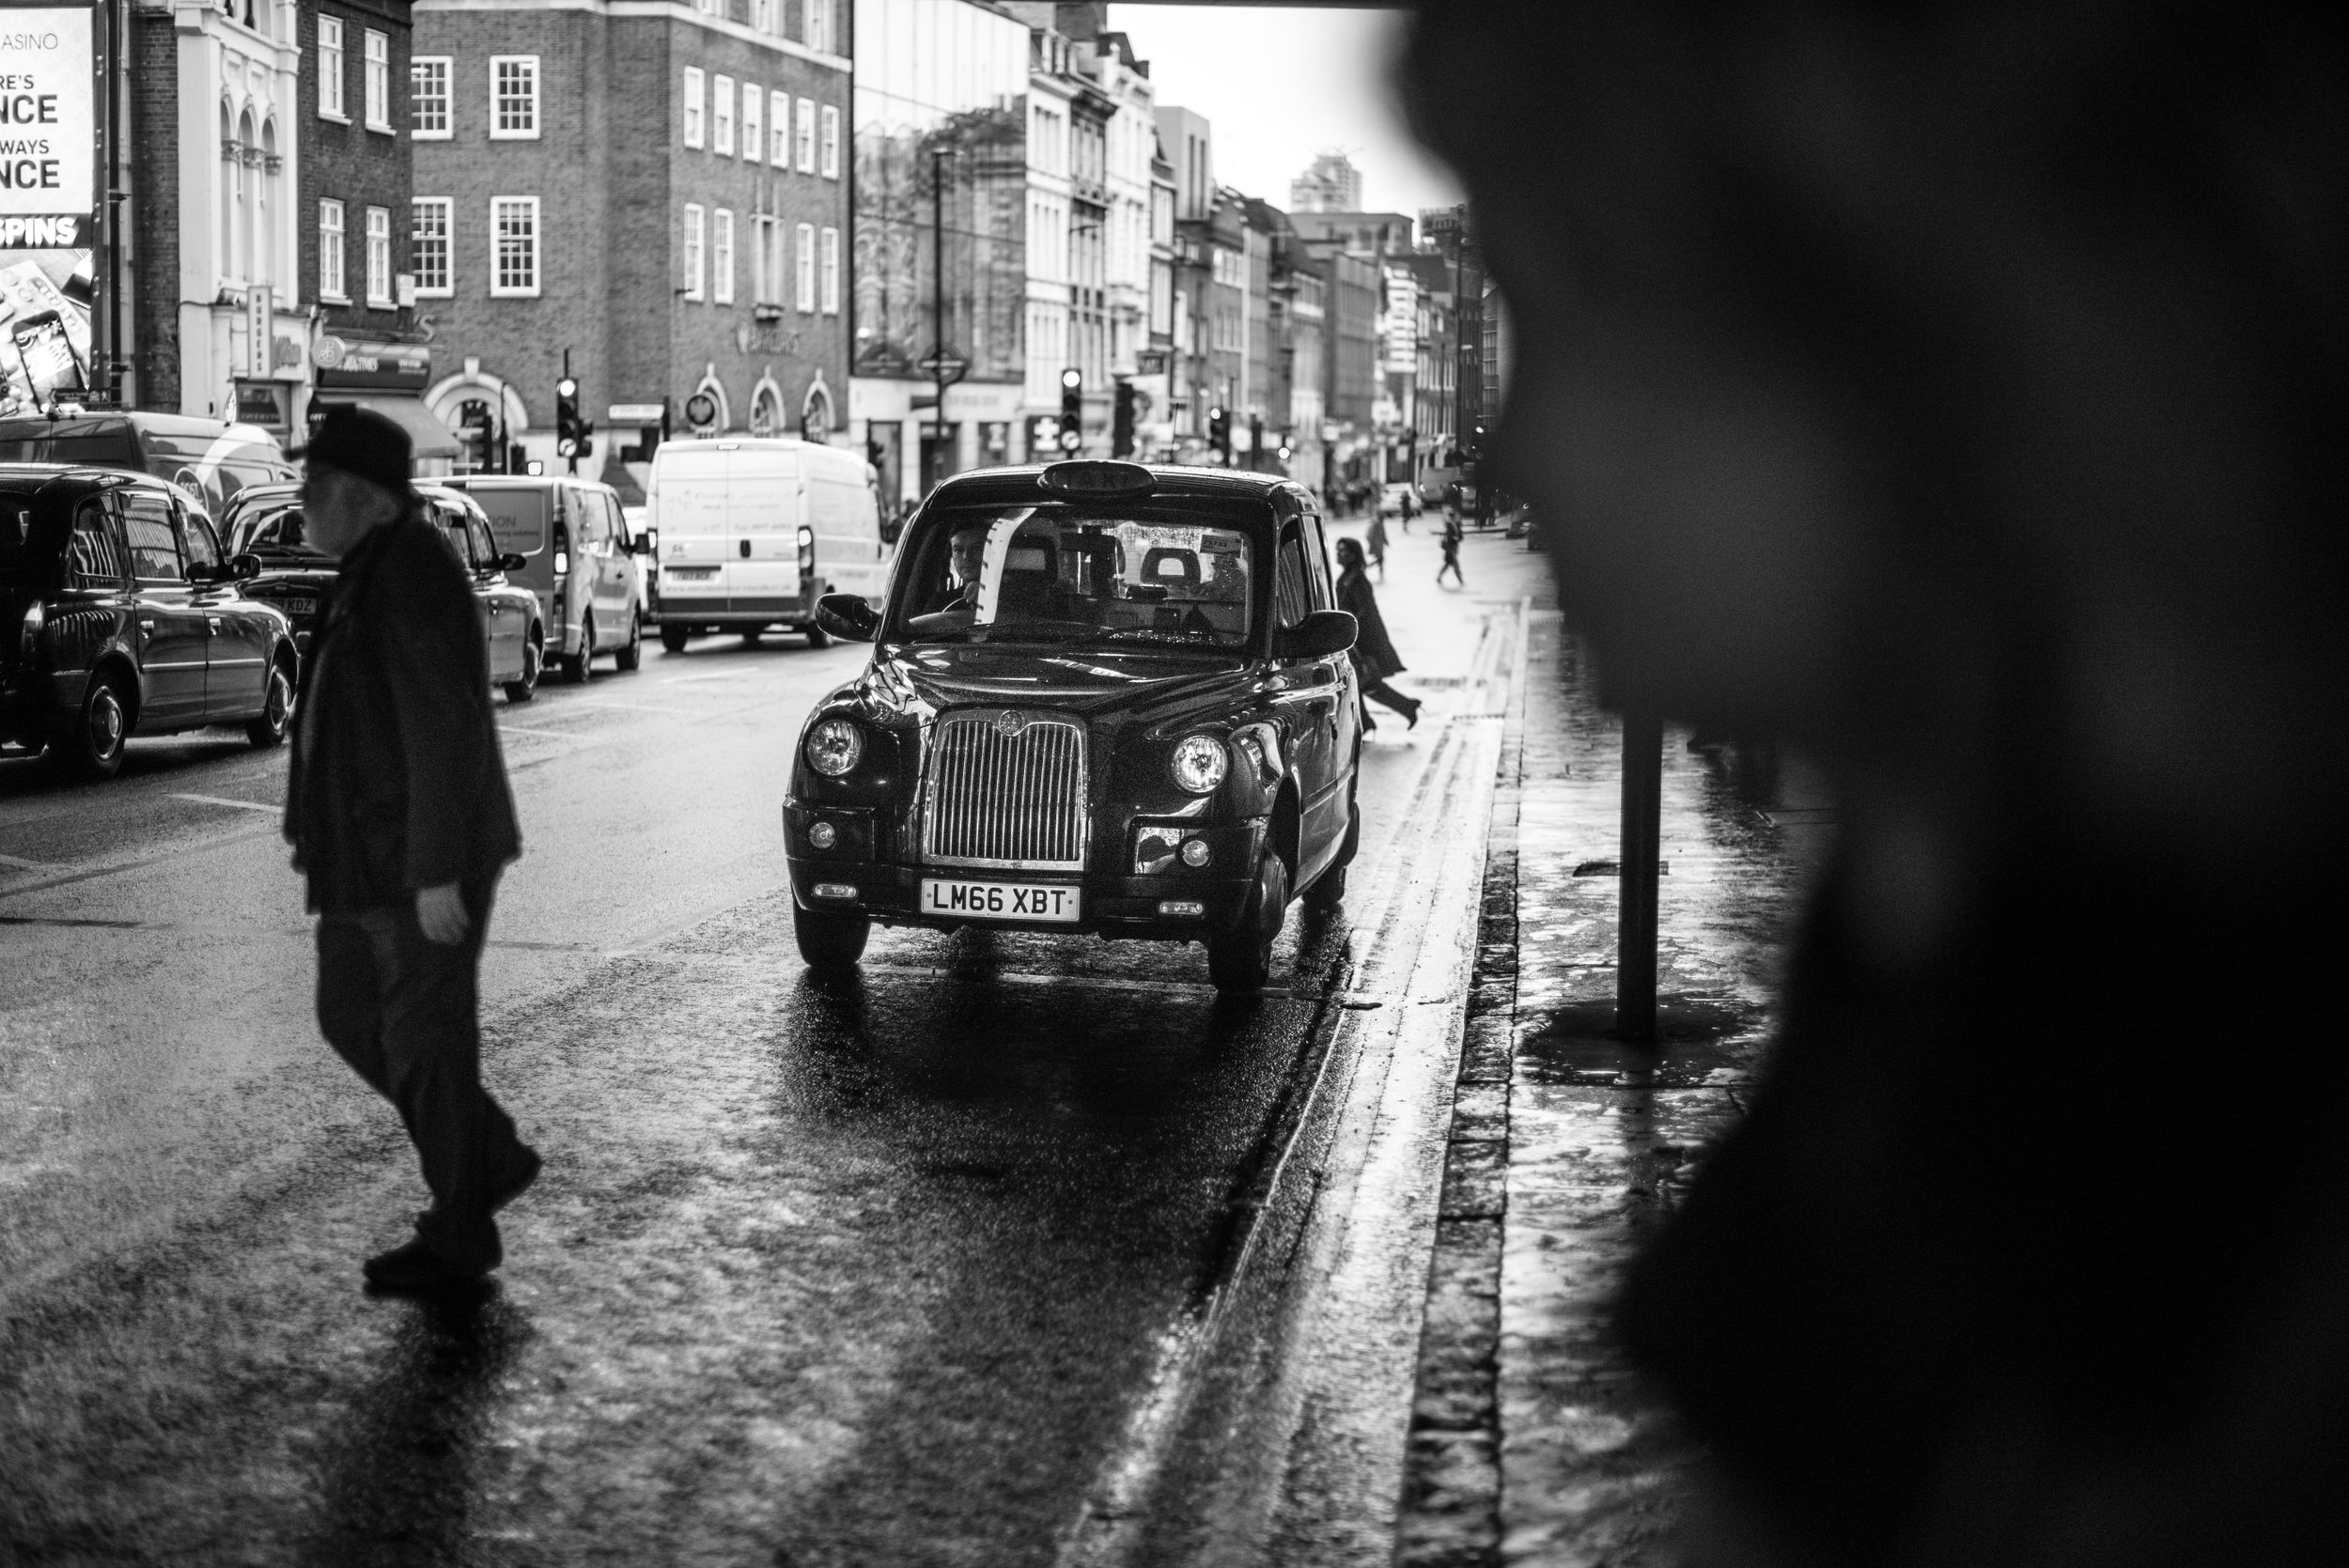 b&w street image in London of people crossing the street in front of a taxi